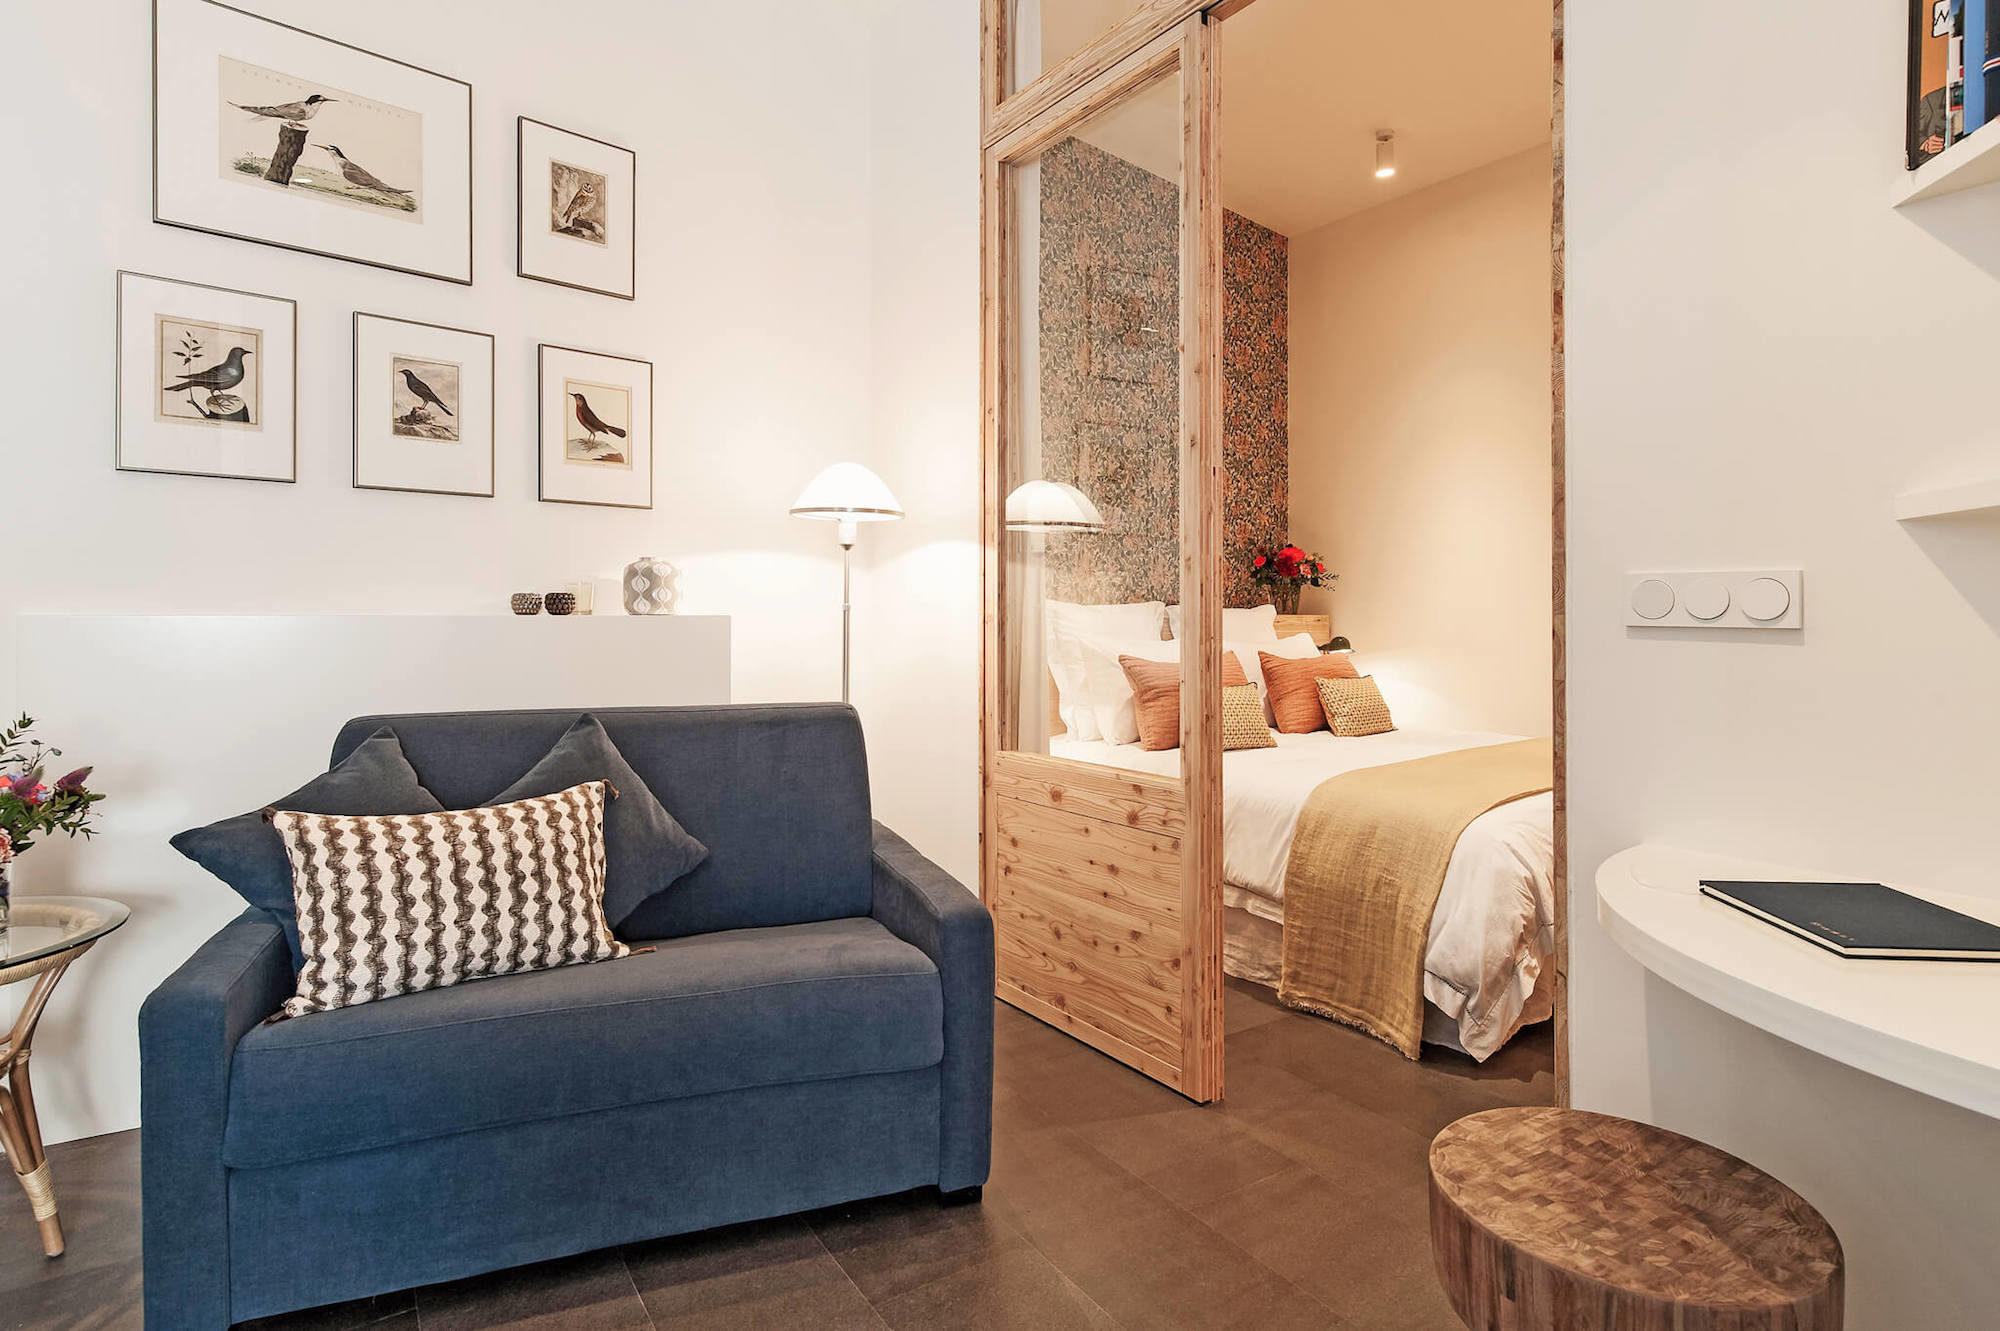 A beautiful rental apartment in Paris' Hotel de Ville area with a blue armchair, bird pictures up on the walls and a cozy double bed in the bedroom.